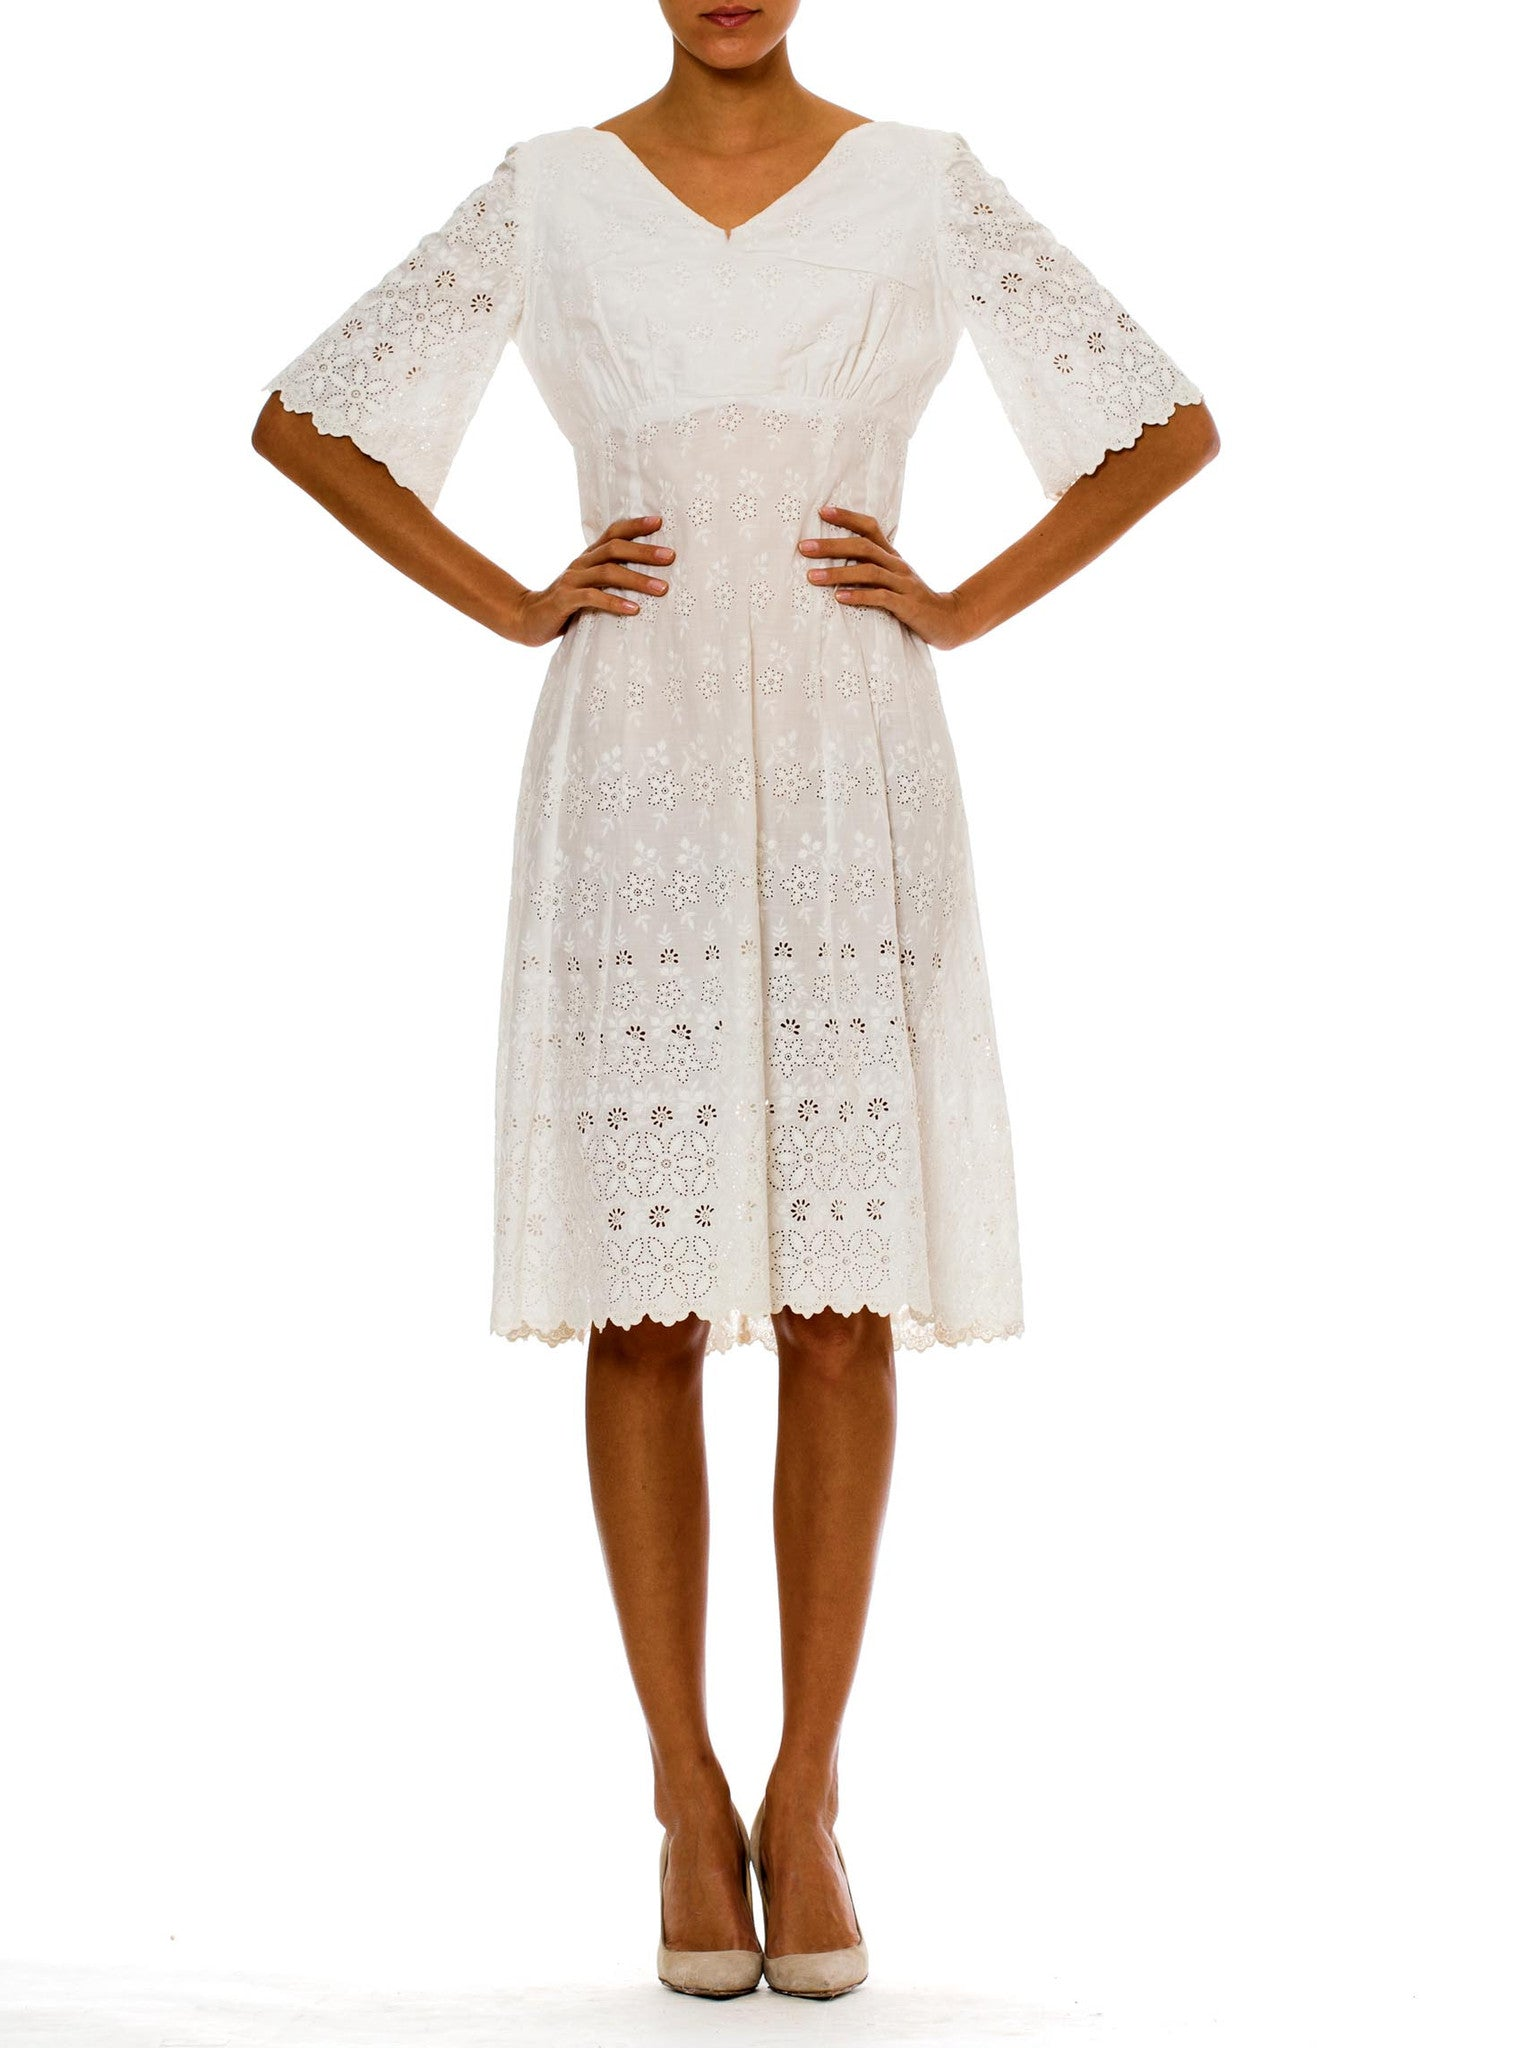 Vintage 1950s Floral Embroidered White Cotton Dress